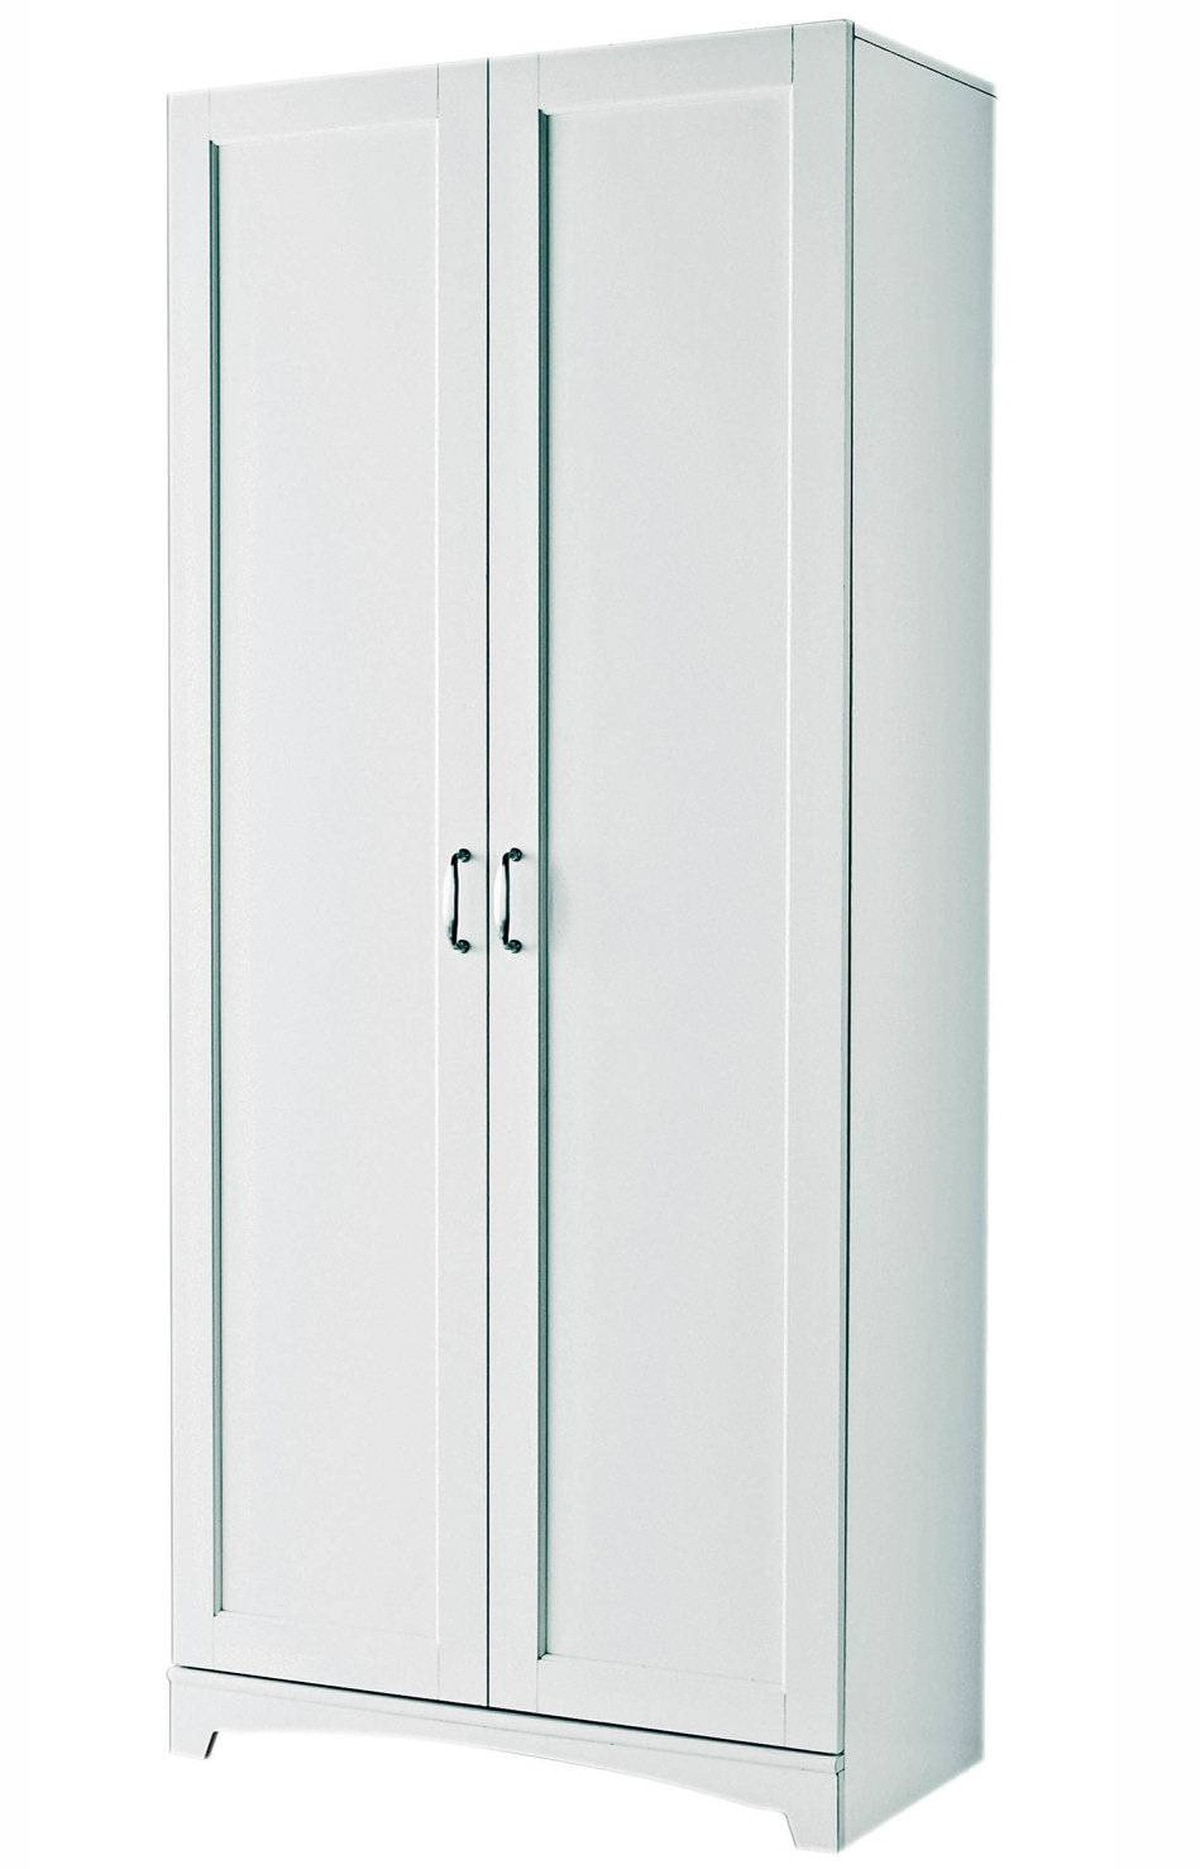 For Living's Brighton Cabinet features simple trim detailing, a decorative baseboard and brushed nickel hardware as well as five deep shelves for ample storage within. $139.99 at Canadian Tire (www.canadiantire.ca).